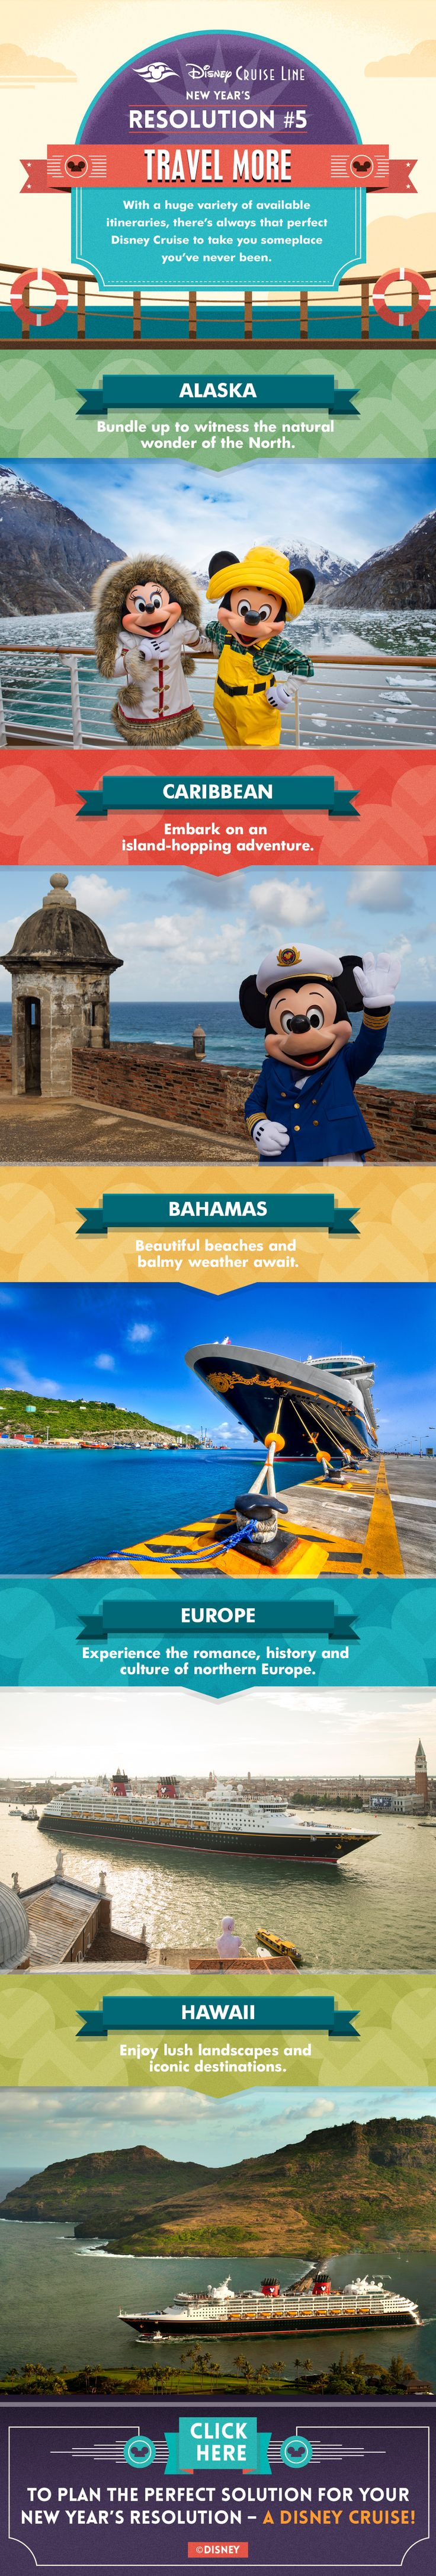 Learn how you can travel more with Disney Cruise Line! Ready to sail away on a Magical Disney Vacation? Contact me today for your free, no obligation Disney Cruise Line quote! donnakay@thewdwguru.com or 877-825-6146 ext 706